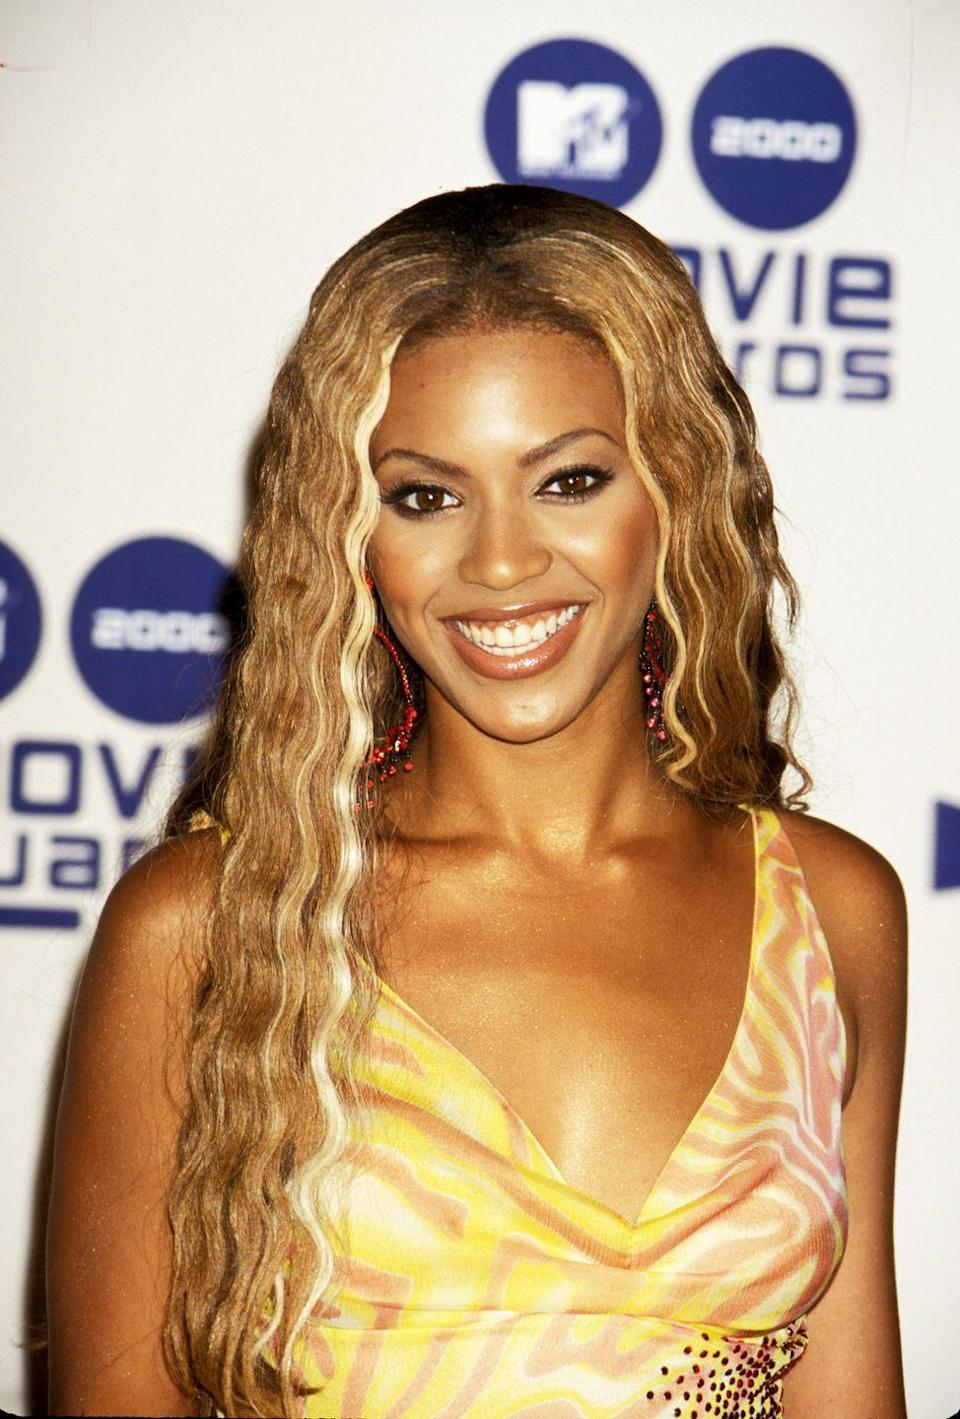 """<p>Leaving behind the crazier styles of the '90s, the 2000s started to see more wearable colors and cuts like Beyonce's wavy, <a href=""""http://www.goodhousekeeping.com/beauty/hair/news/g2443/blonde-hair-color-ideas/"""" rel=""""nofollow noopener"""" target=""""_blank"""" data-ylk=""""slk:honey blonde"""" class=""""link rapid-noclick-resp"""">honey blonde</a> hair.</p>"""